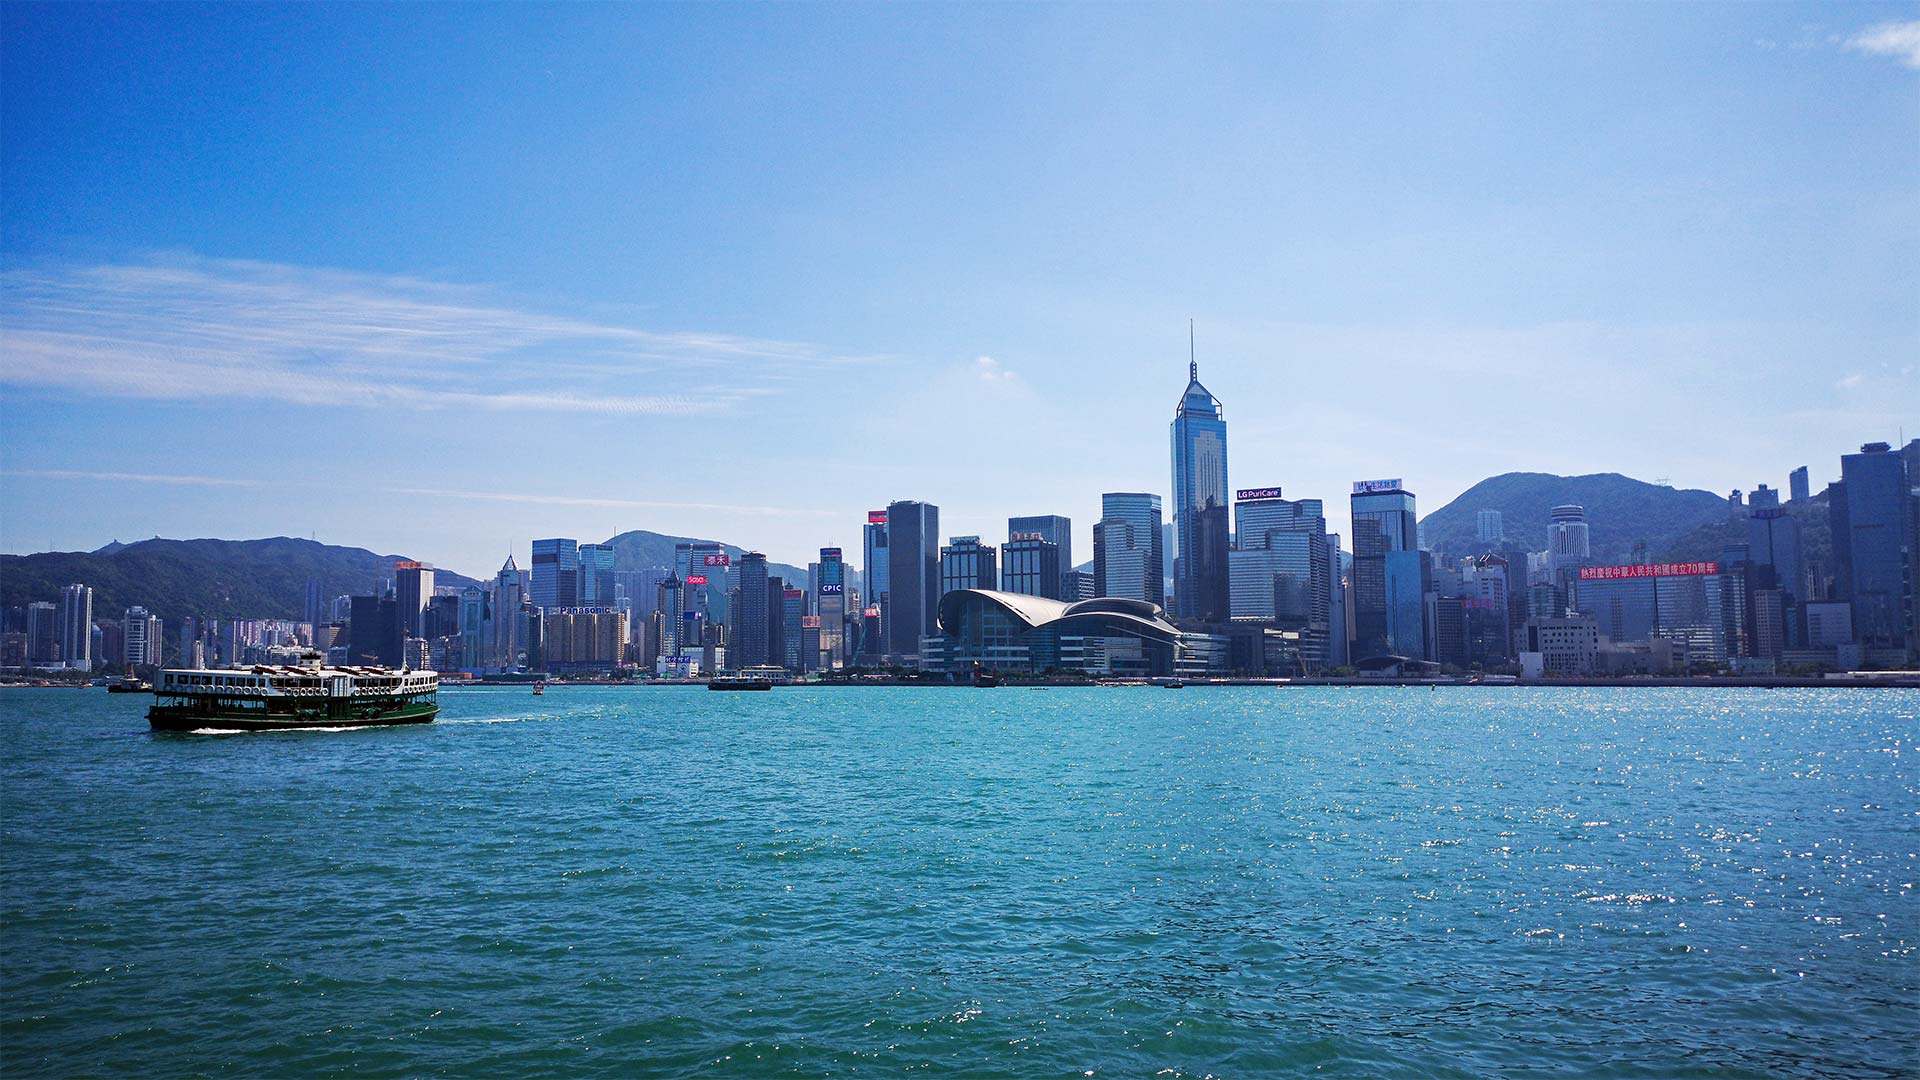 View from the Star Ferry on Hong Kong Island